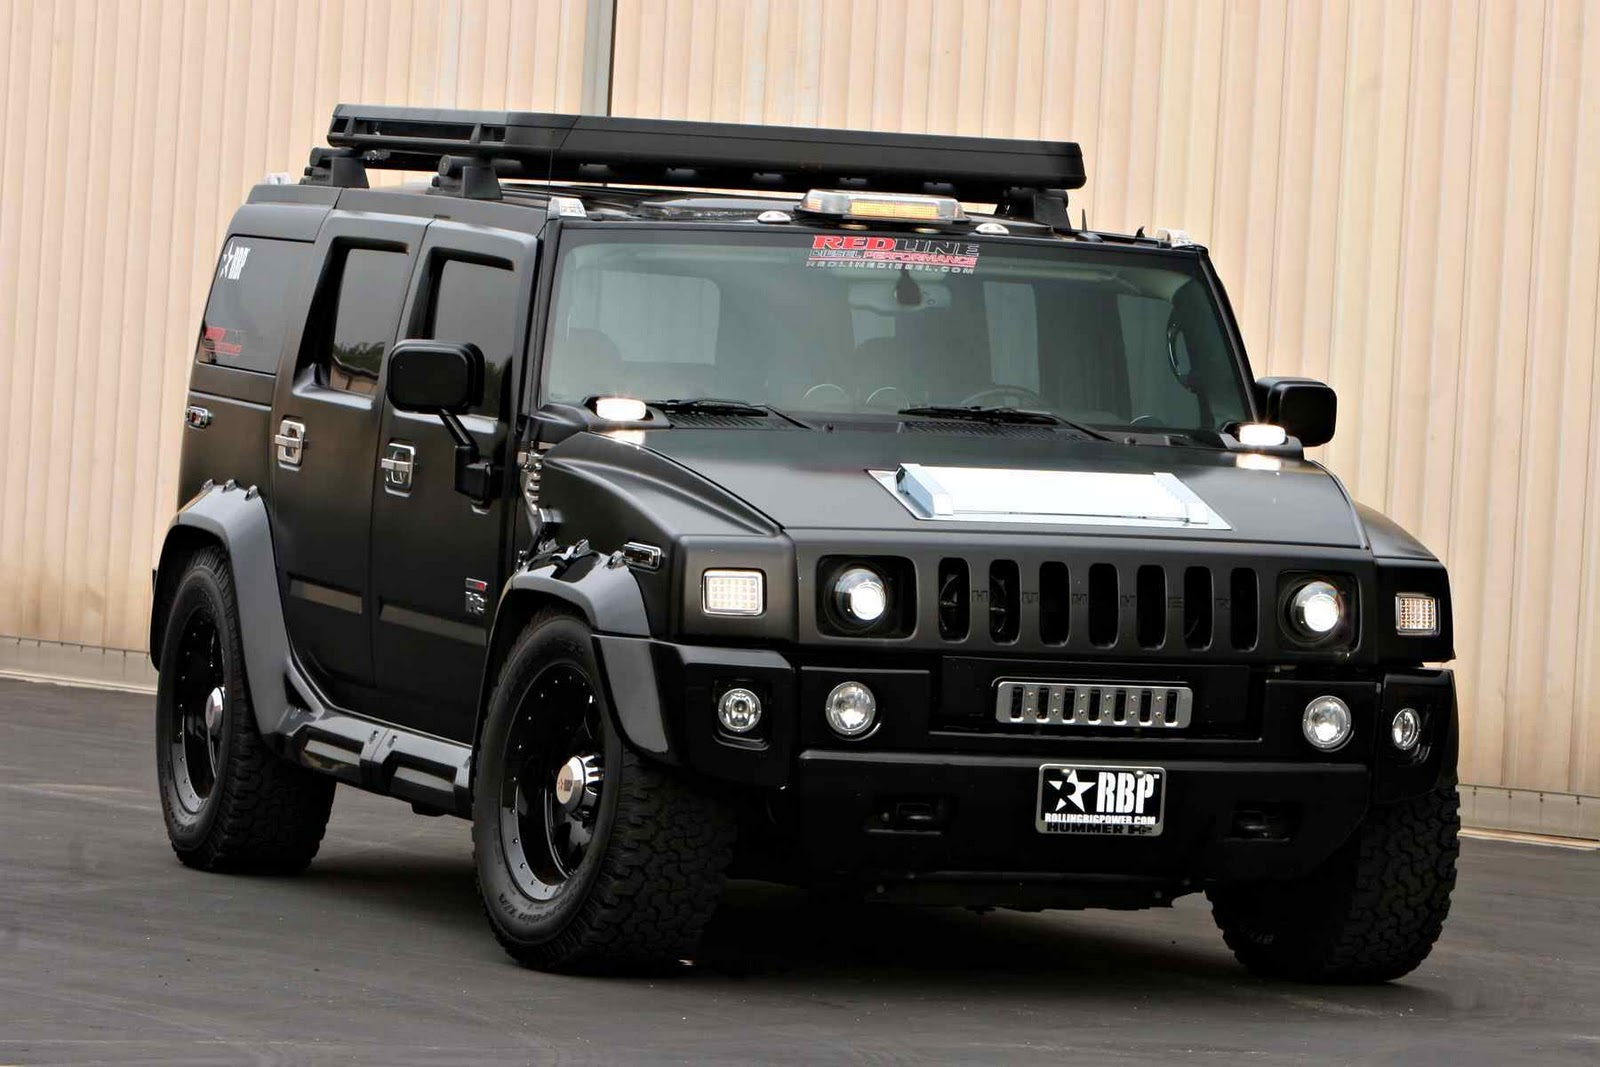 Hummer H3 2011 Wallpaper For Phone